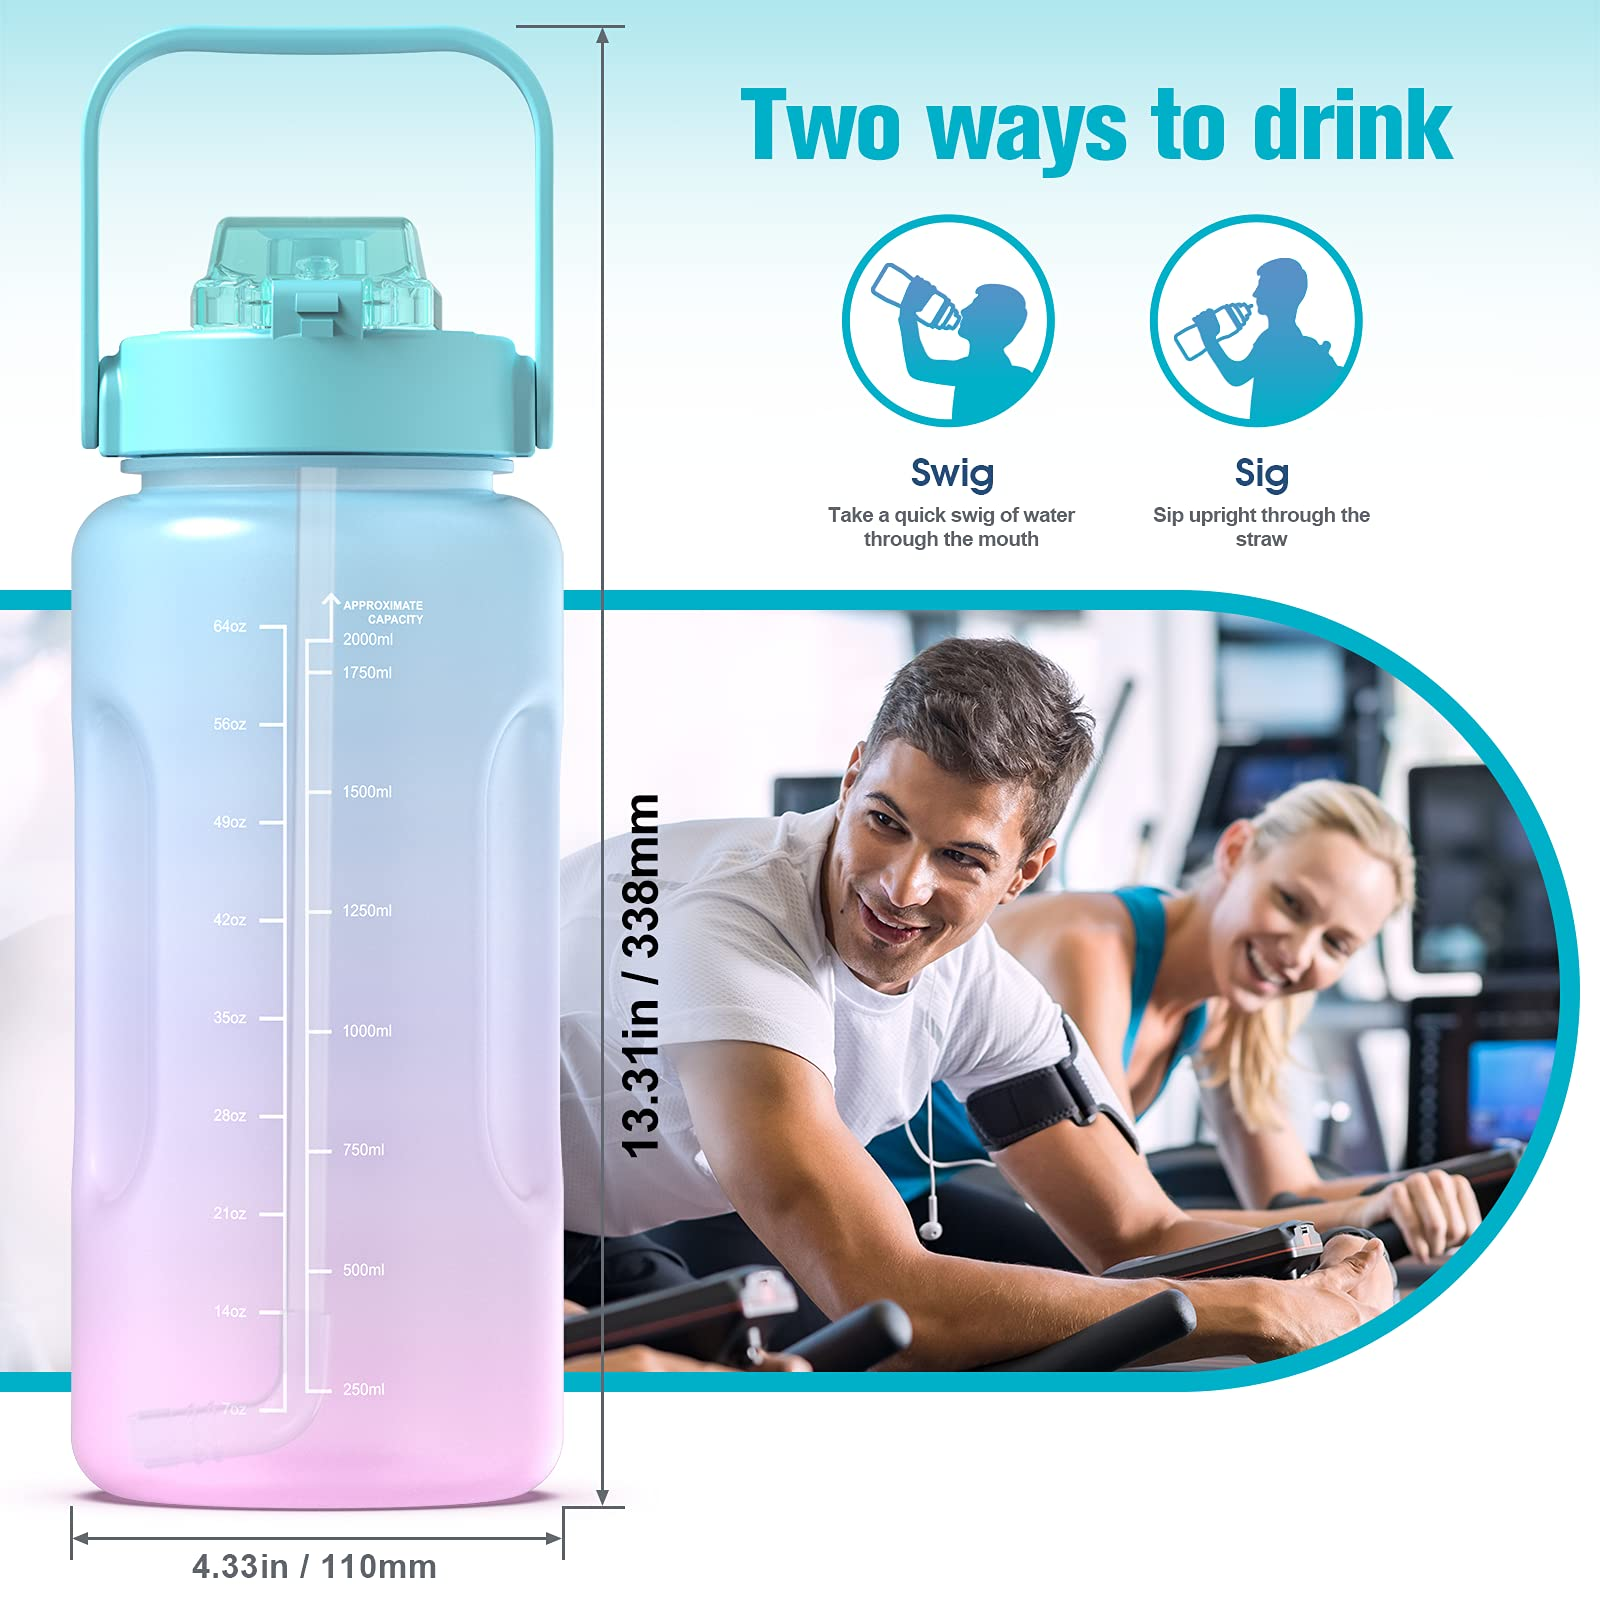 Kymbax Half Gallon/64oz Water Bottle with Time Marker and Straw, Motivational Water Bottle with Handle, Leakproof BPA FREE Tritan Water Jug for Gym, Outdoor, Fitness (Ombre Green Pink, 64oz)